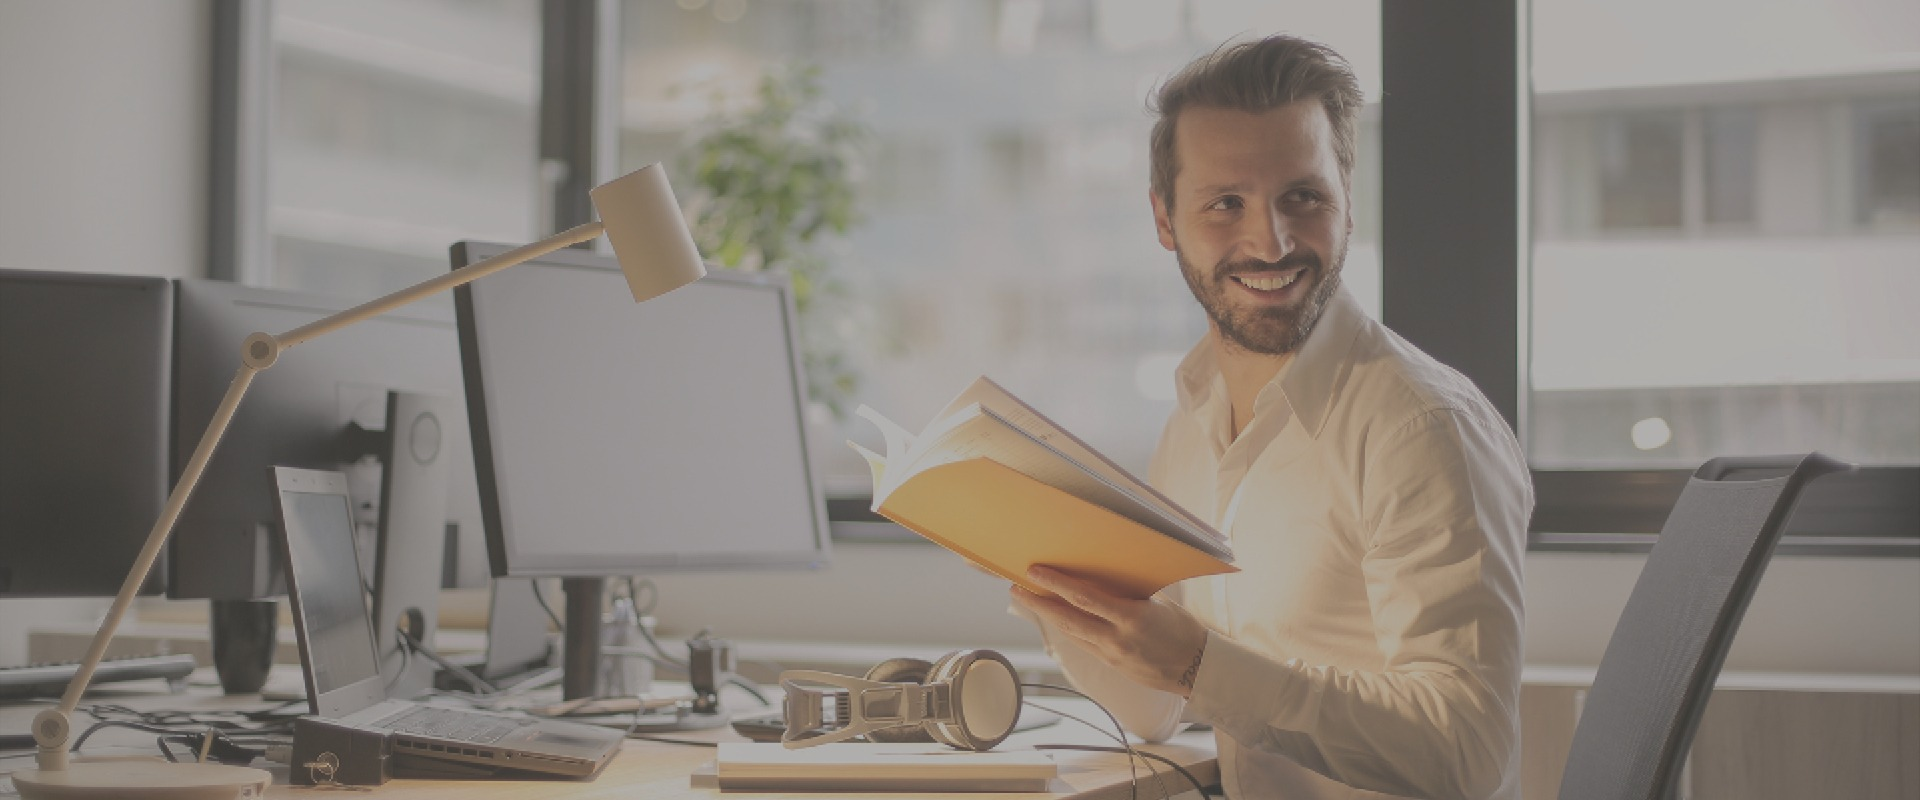 Man sitting at desk whilst smiling and holing a book